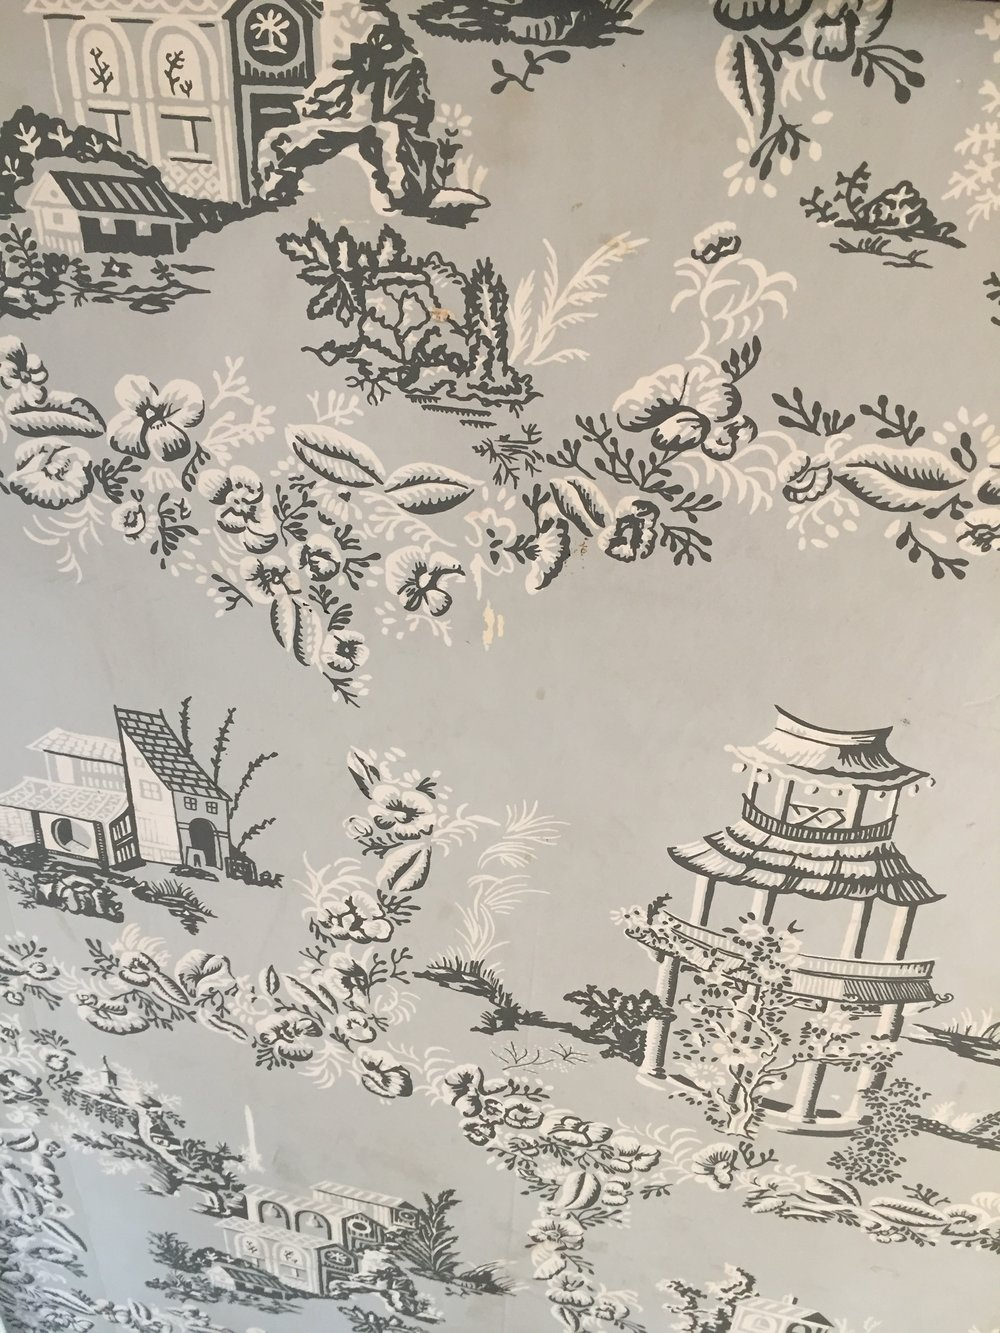 Wallpaper on the walls in one of the rooms of the Longfellow Wayside Inn - Sudbury, MA - Photo Linda Smith Davis